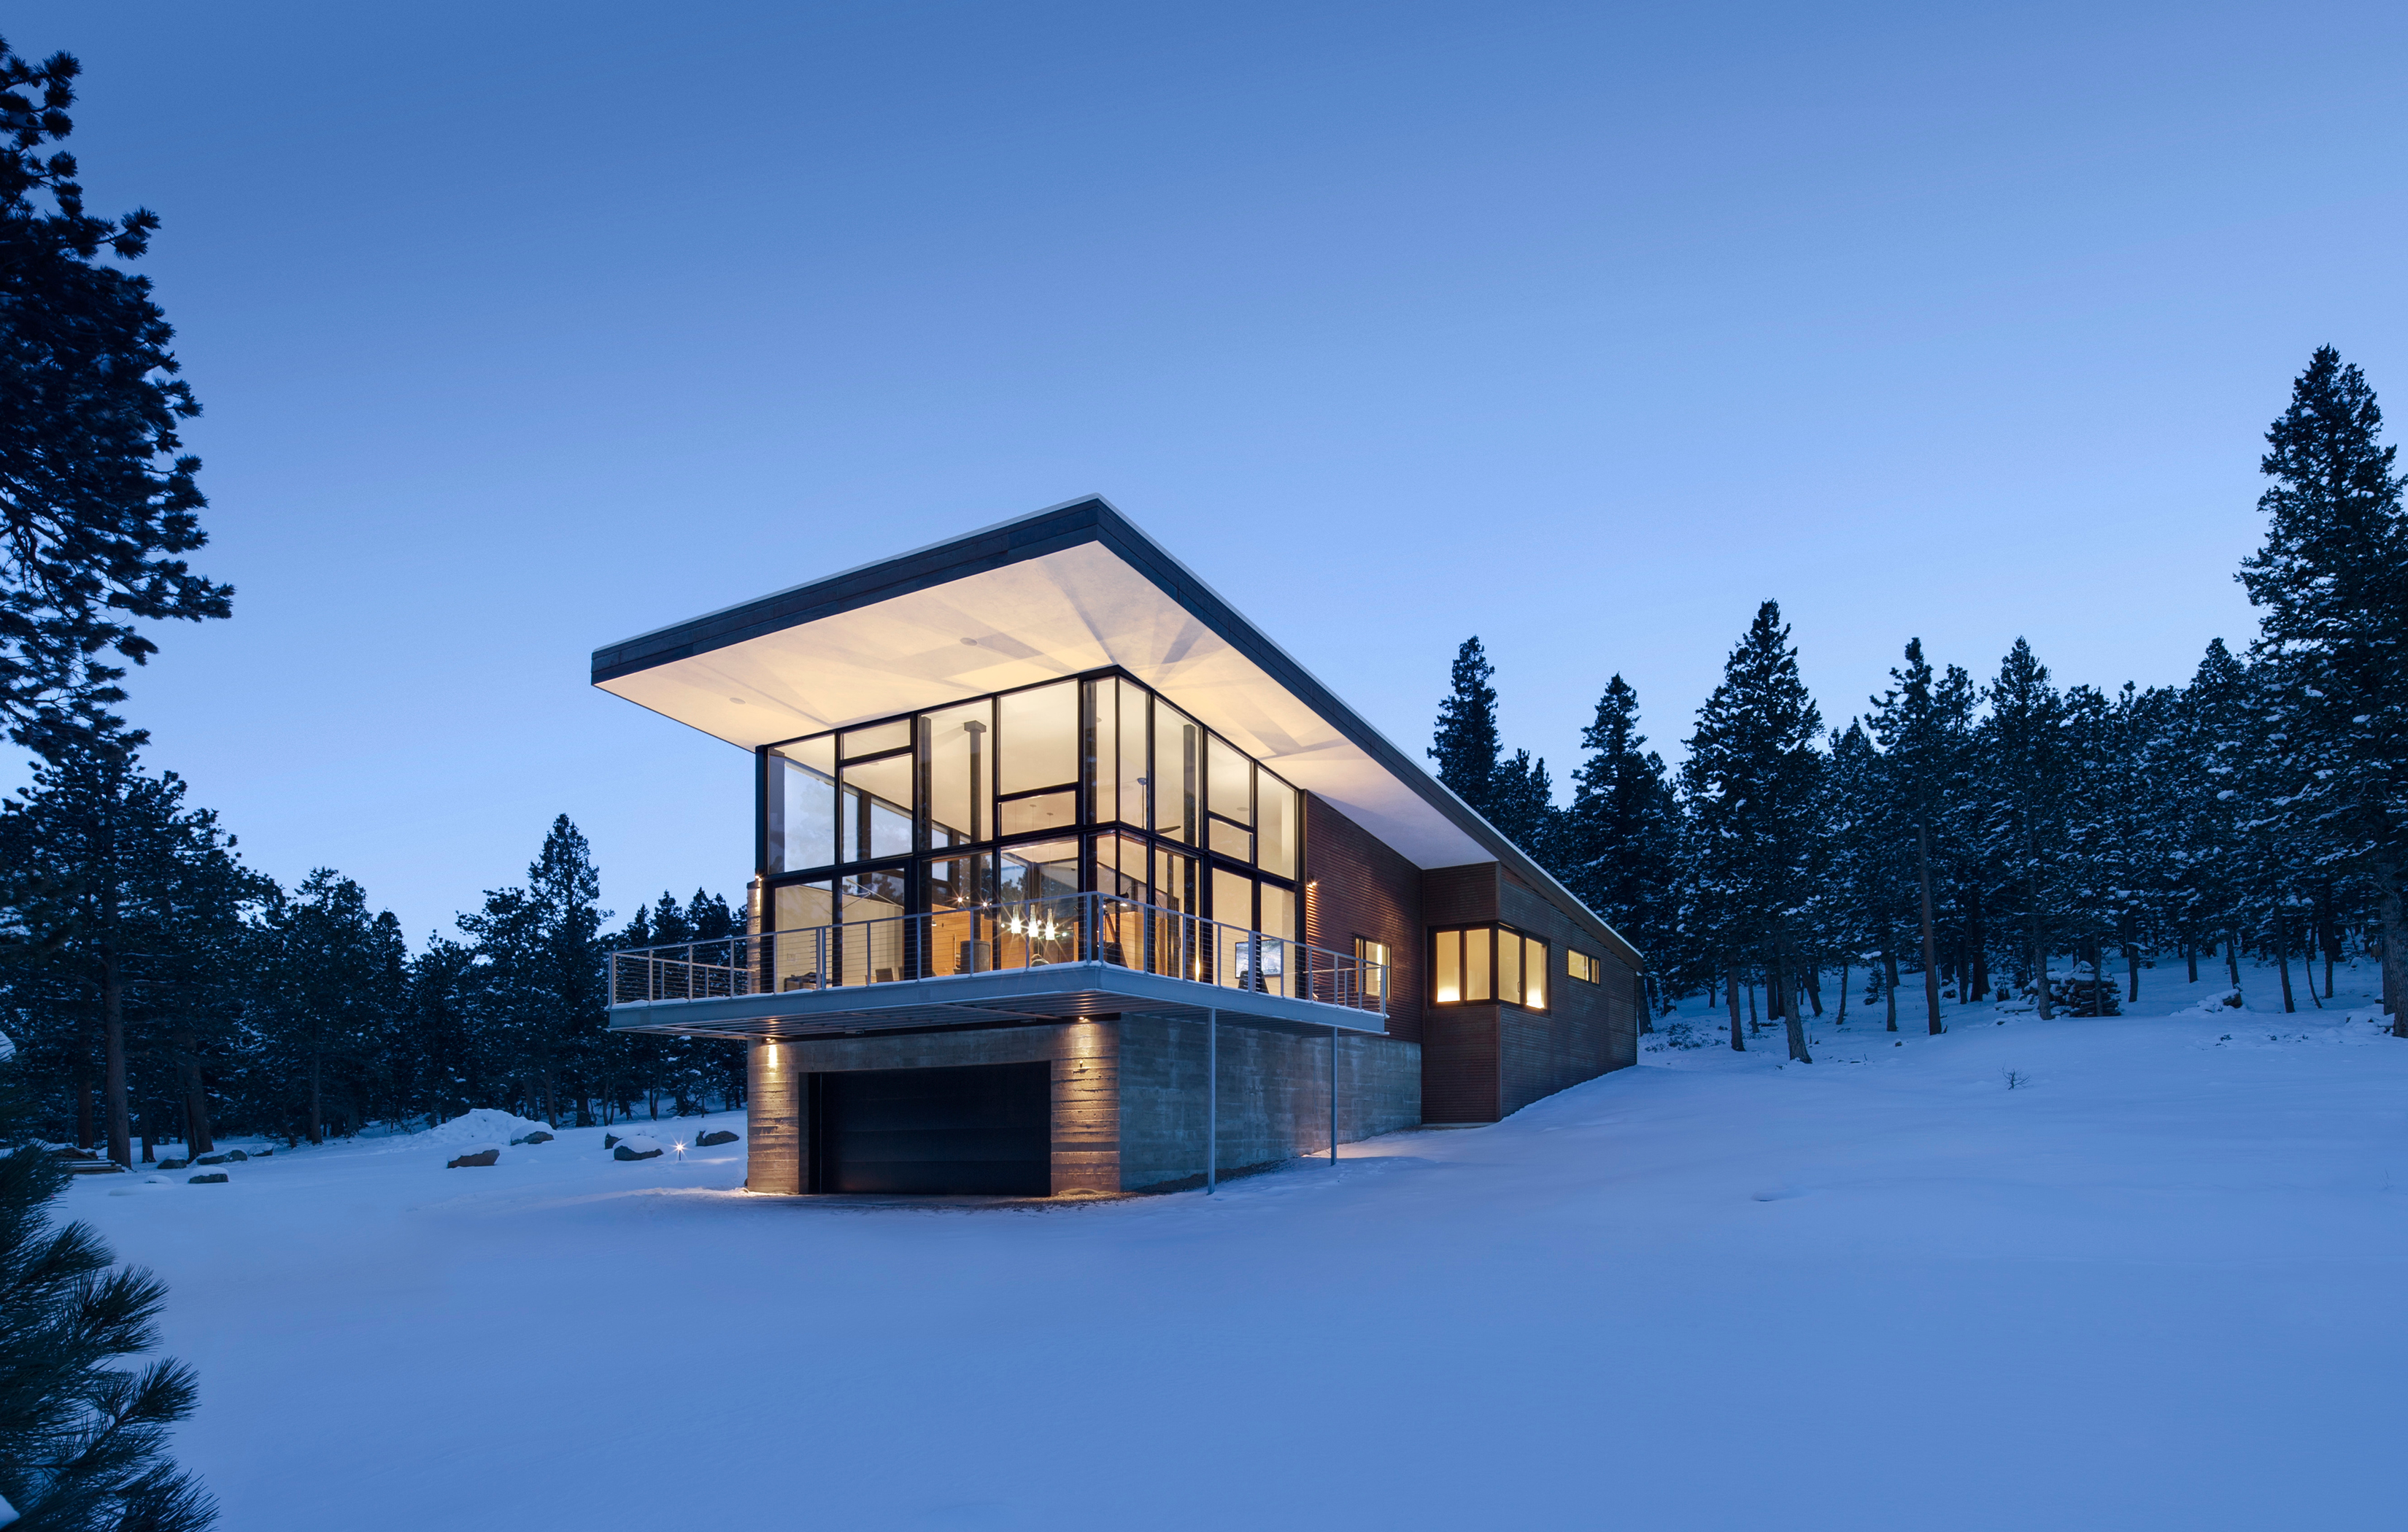 Lodgepole Retreat Architect Magazine Arch11 Inc